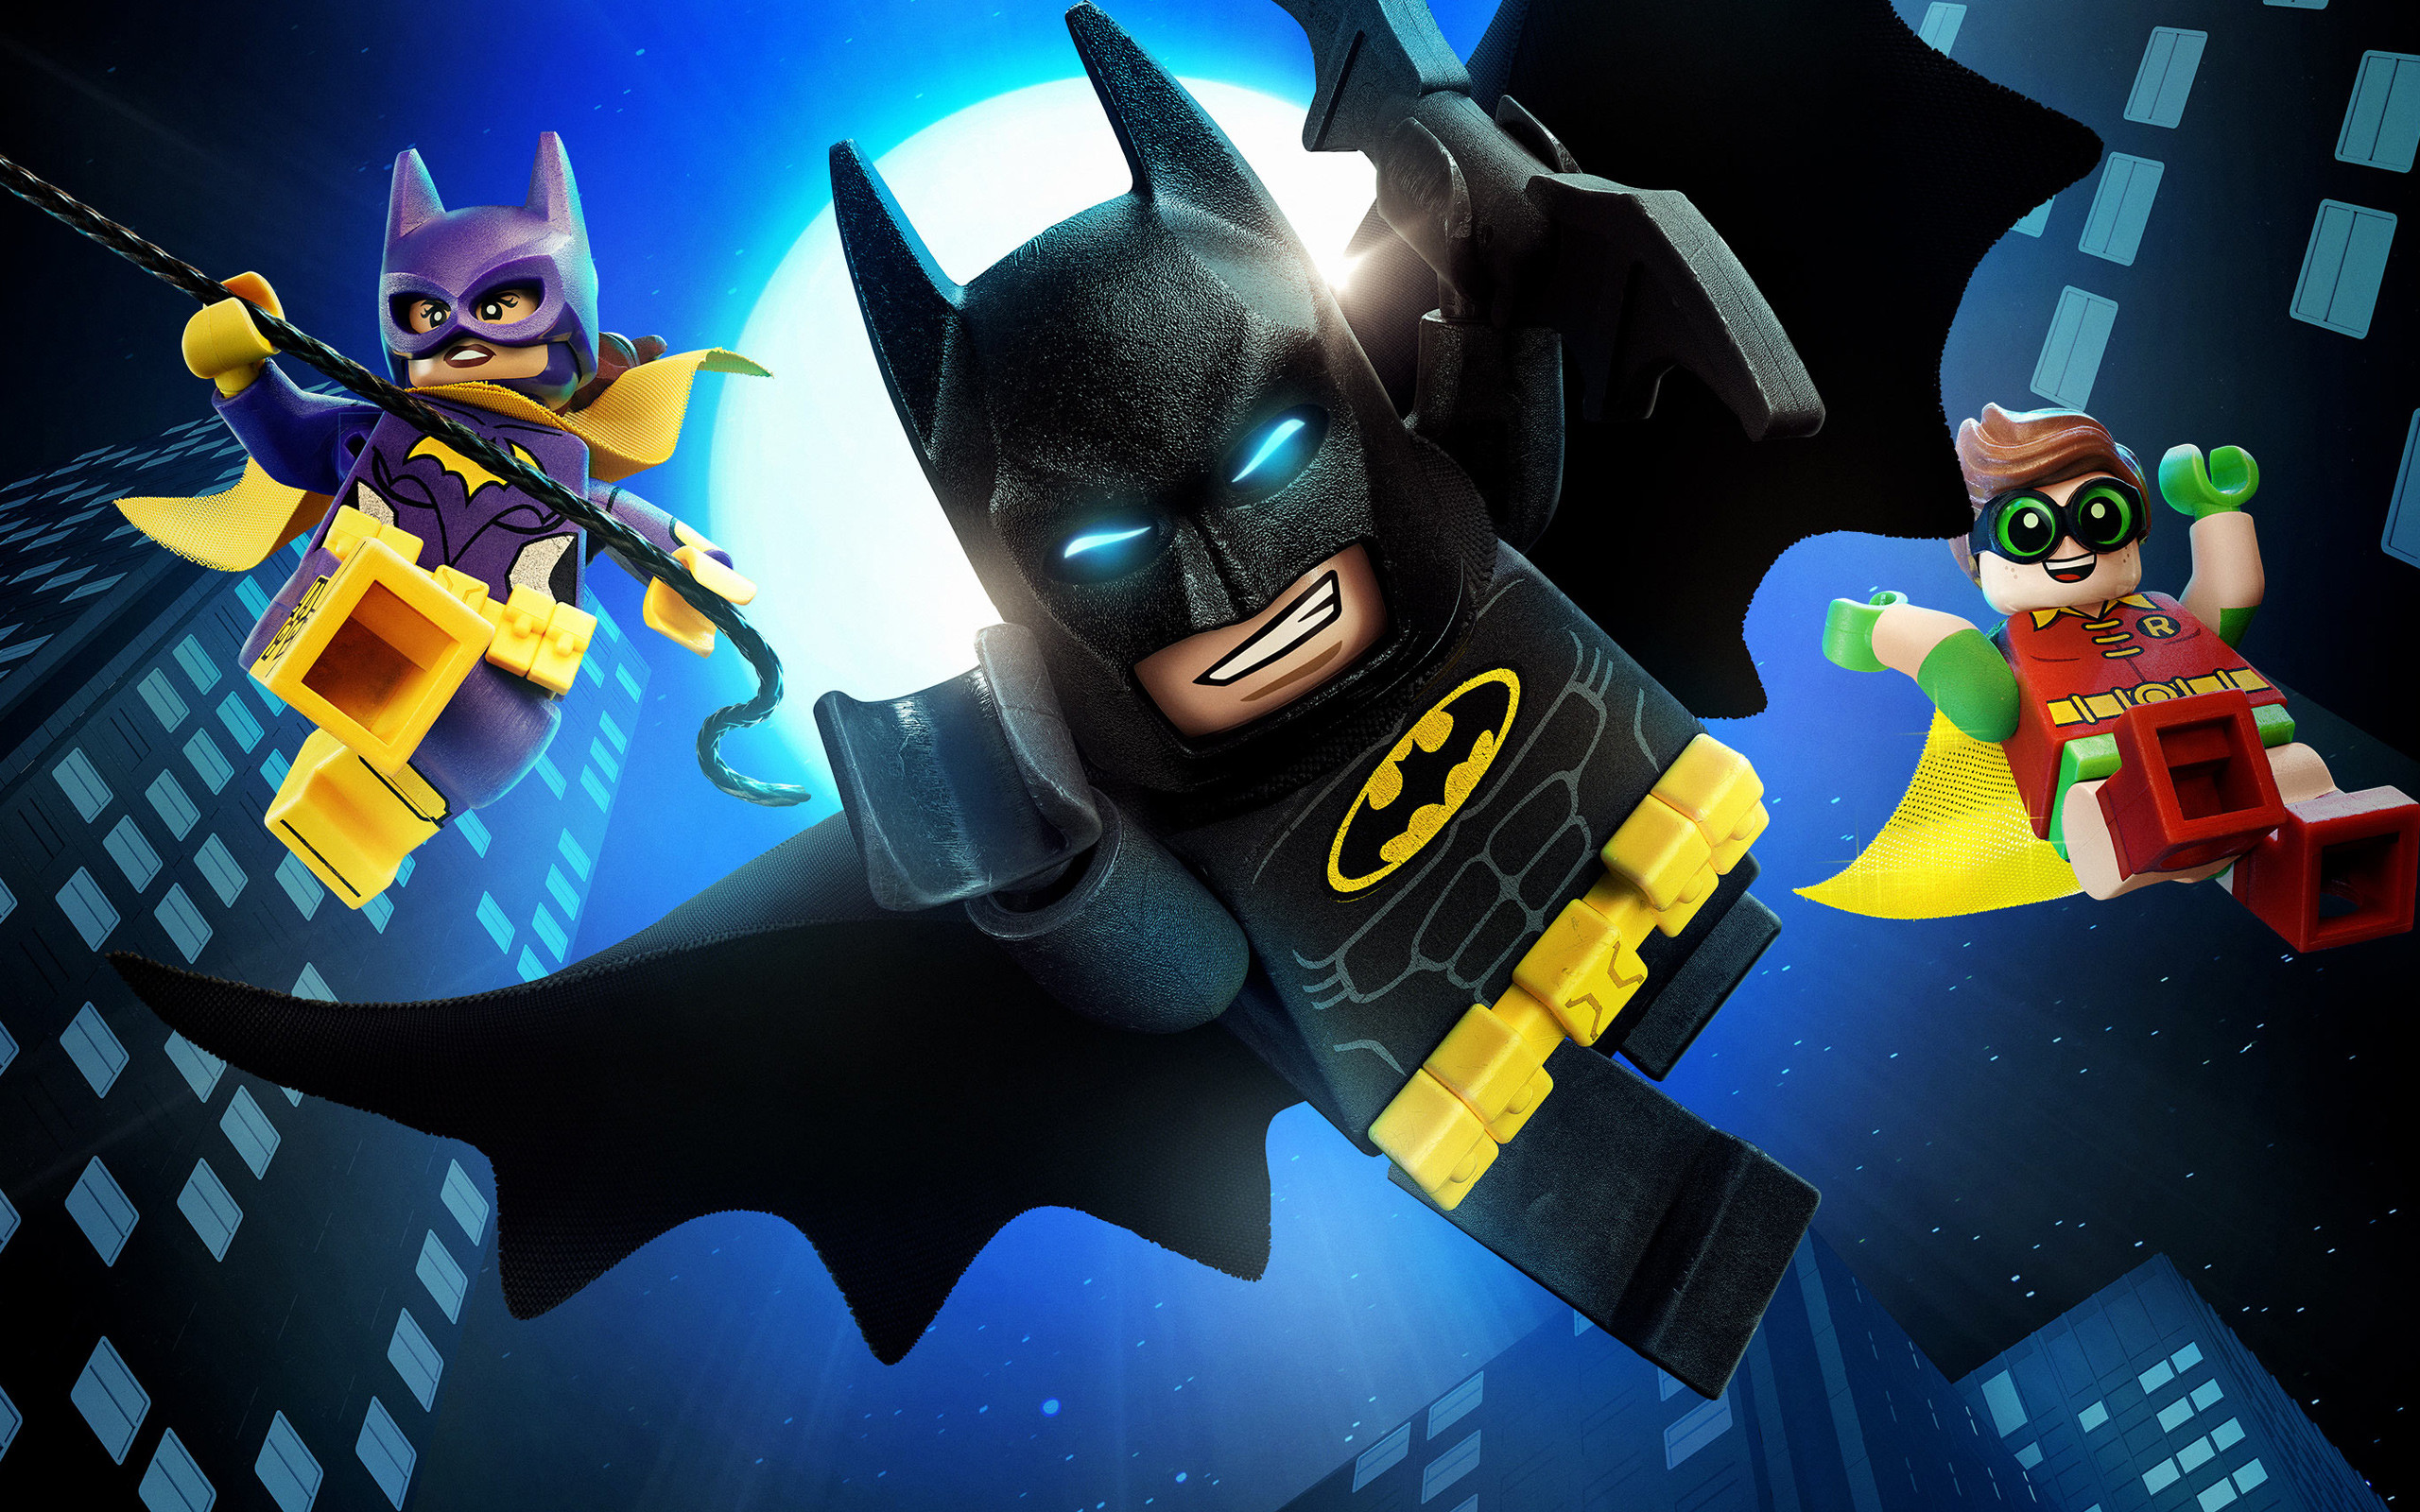 2560x1600 HD The LEGO Batman Movie wallpaper | The LEGO Batman Movie wallpapers hd |  Pinterest | Lego batman movie, Lego batman and Movie wallpapers